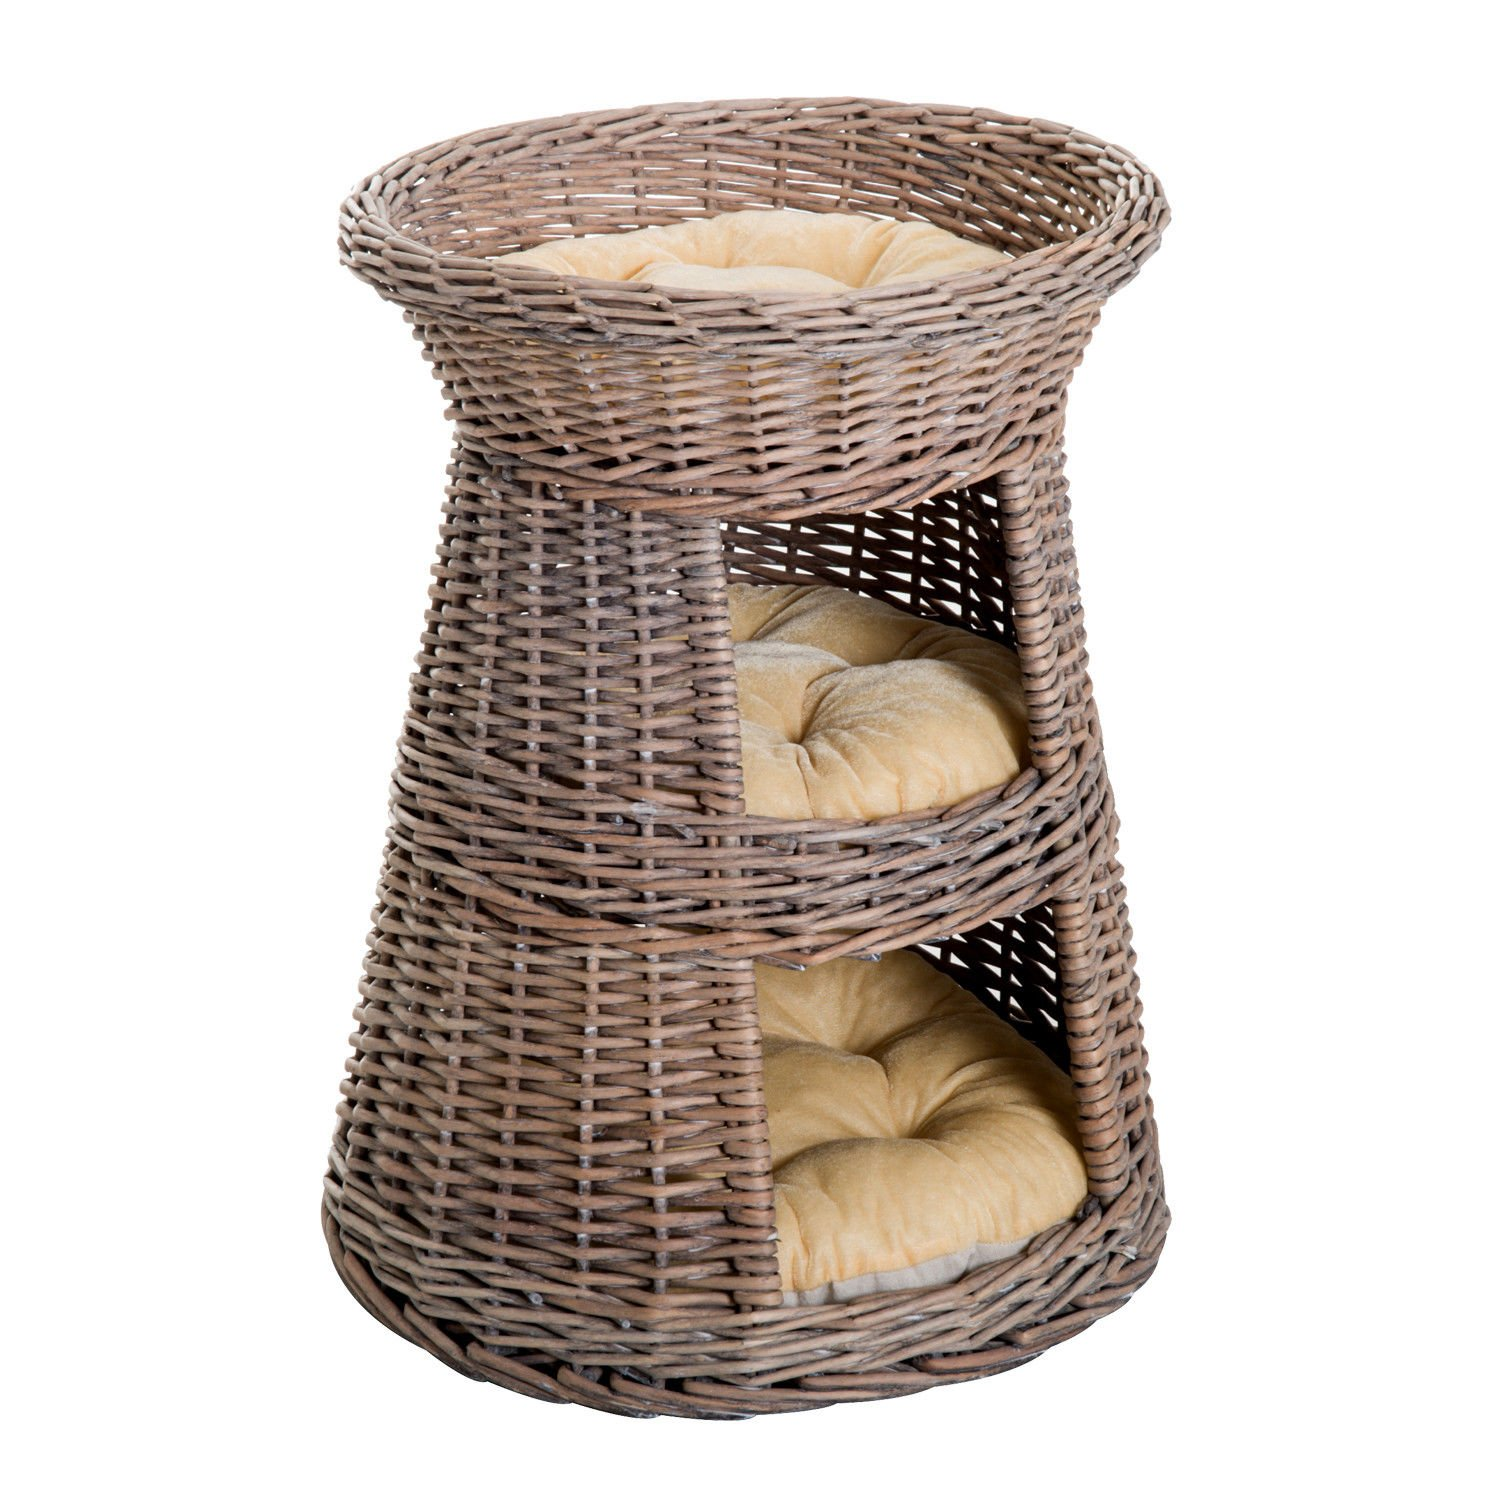 PawHut 24'' Three Tier Wicker Elevated Cat Bed Tree House Condo with Cushions